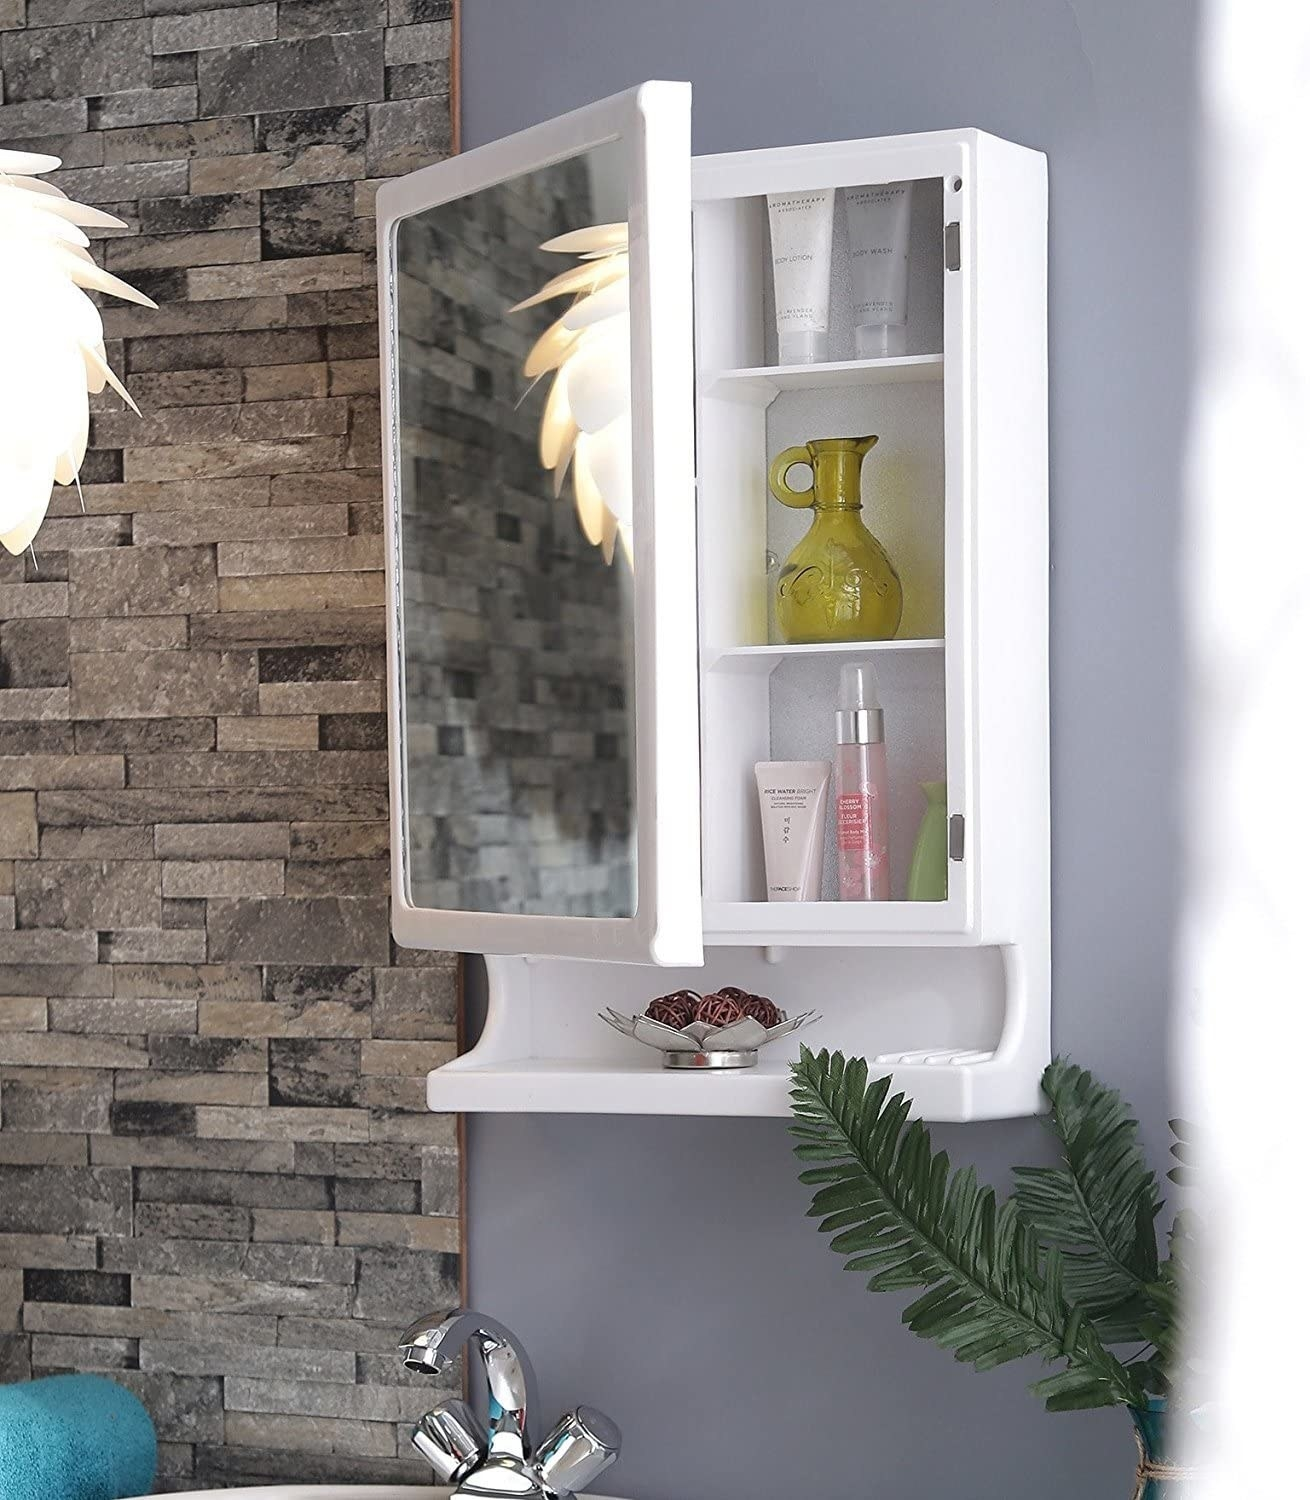 A mirror cabinet with items in it